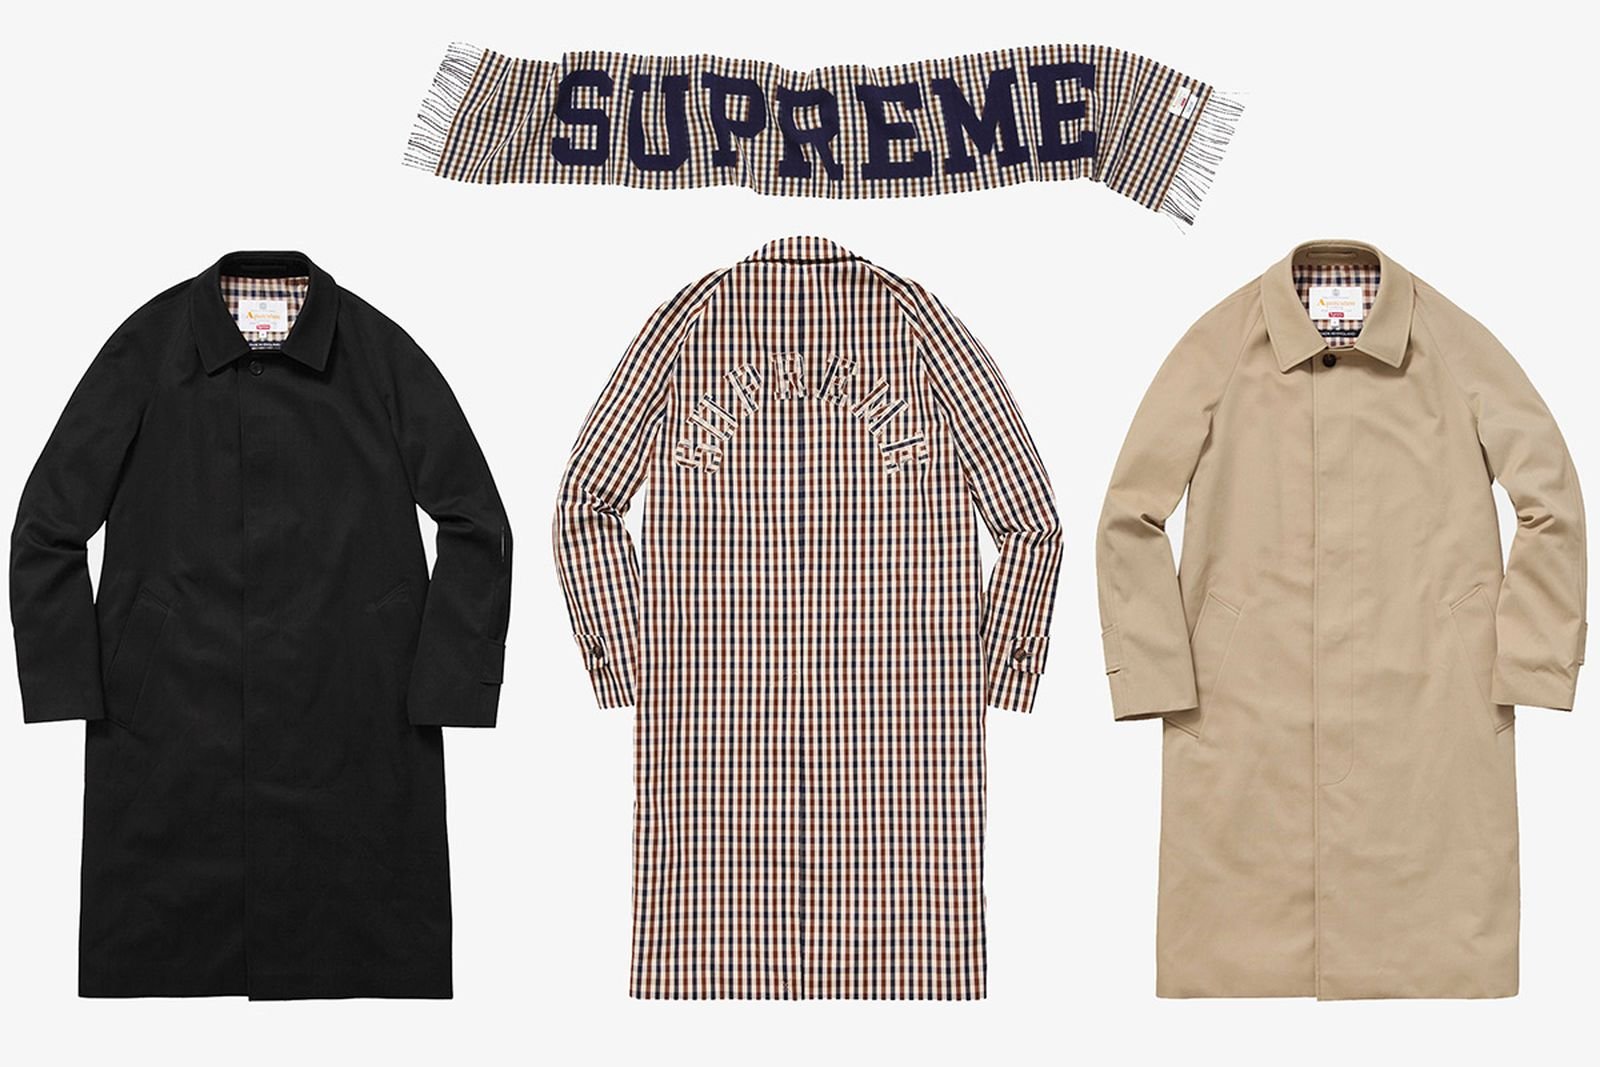 every-clothing-brand-supreme-ever-collaborated-30